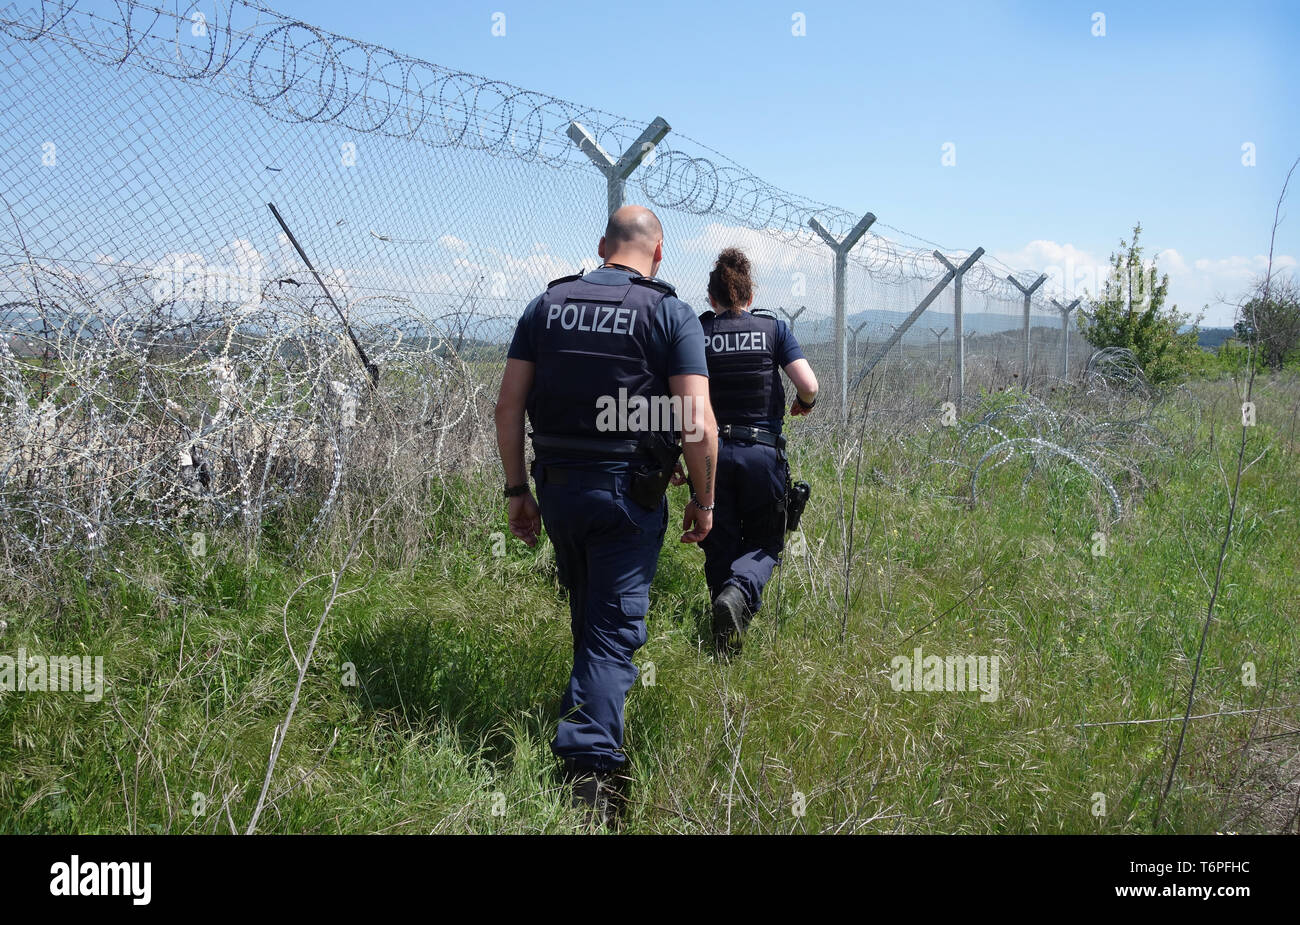 02 May 2019, Greece, Thessaloniki: The North Rhine-Westphalian police officers Muna Mougawaz and Alexander Rankovic are working for the EU border protection organisation Frontex at the border fence between Greece and North Macedonia. North Rhine-Westphalia's Interior Minister Reul visited North Rhine-Westphalian police officers who, as part of the EU border protection agency Frontex, are helping to secure the Greek border with northern Macedonia. The main aim of the officials is to prevent refugees and migrants from illegally arriving in Central Europe from Northern Macedonia. Photo: Alexia An - Stock Image